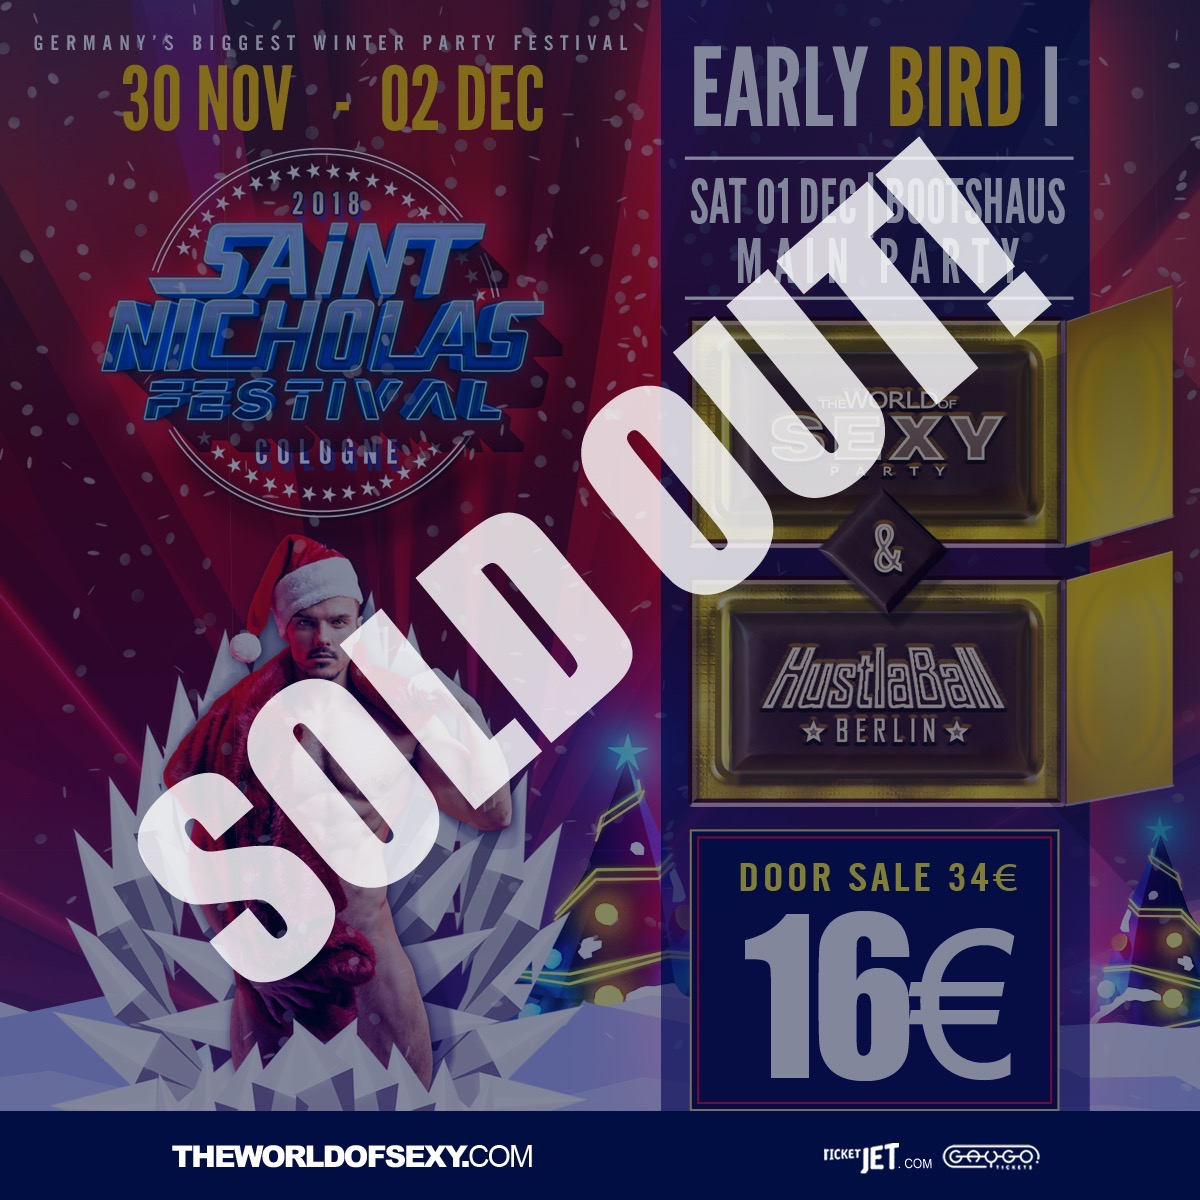 , +++  SEXY HUSTLA BALL EARLY BIRD I sold out  +++